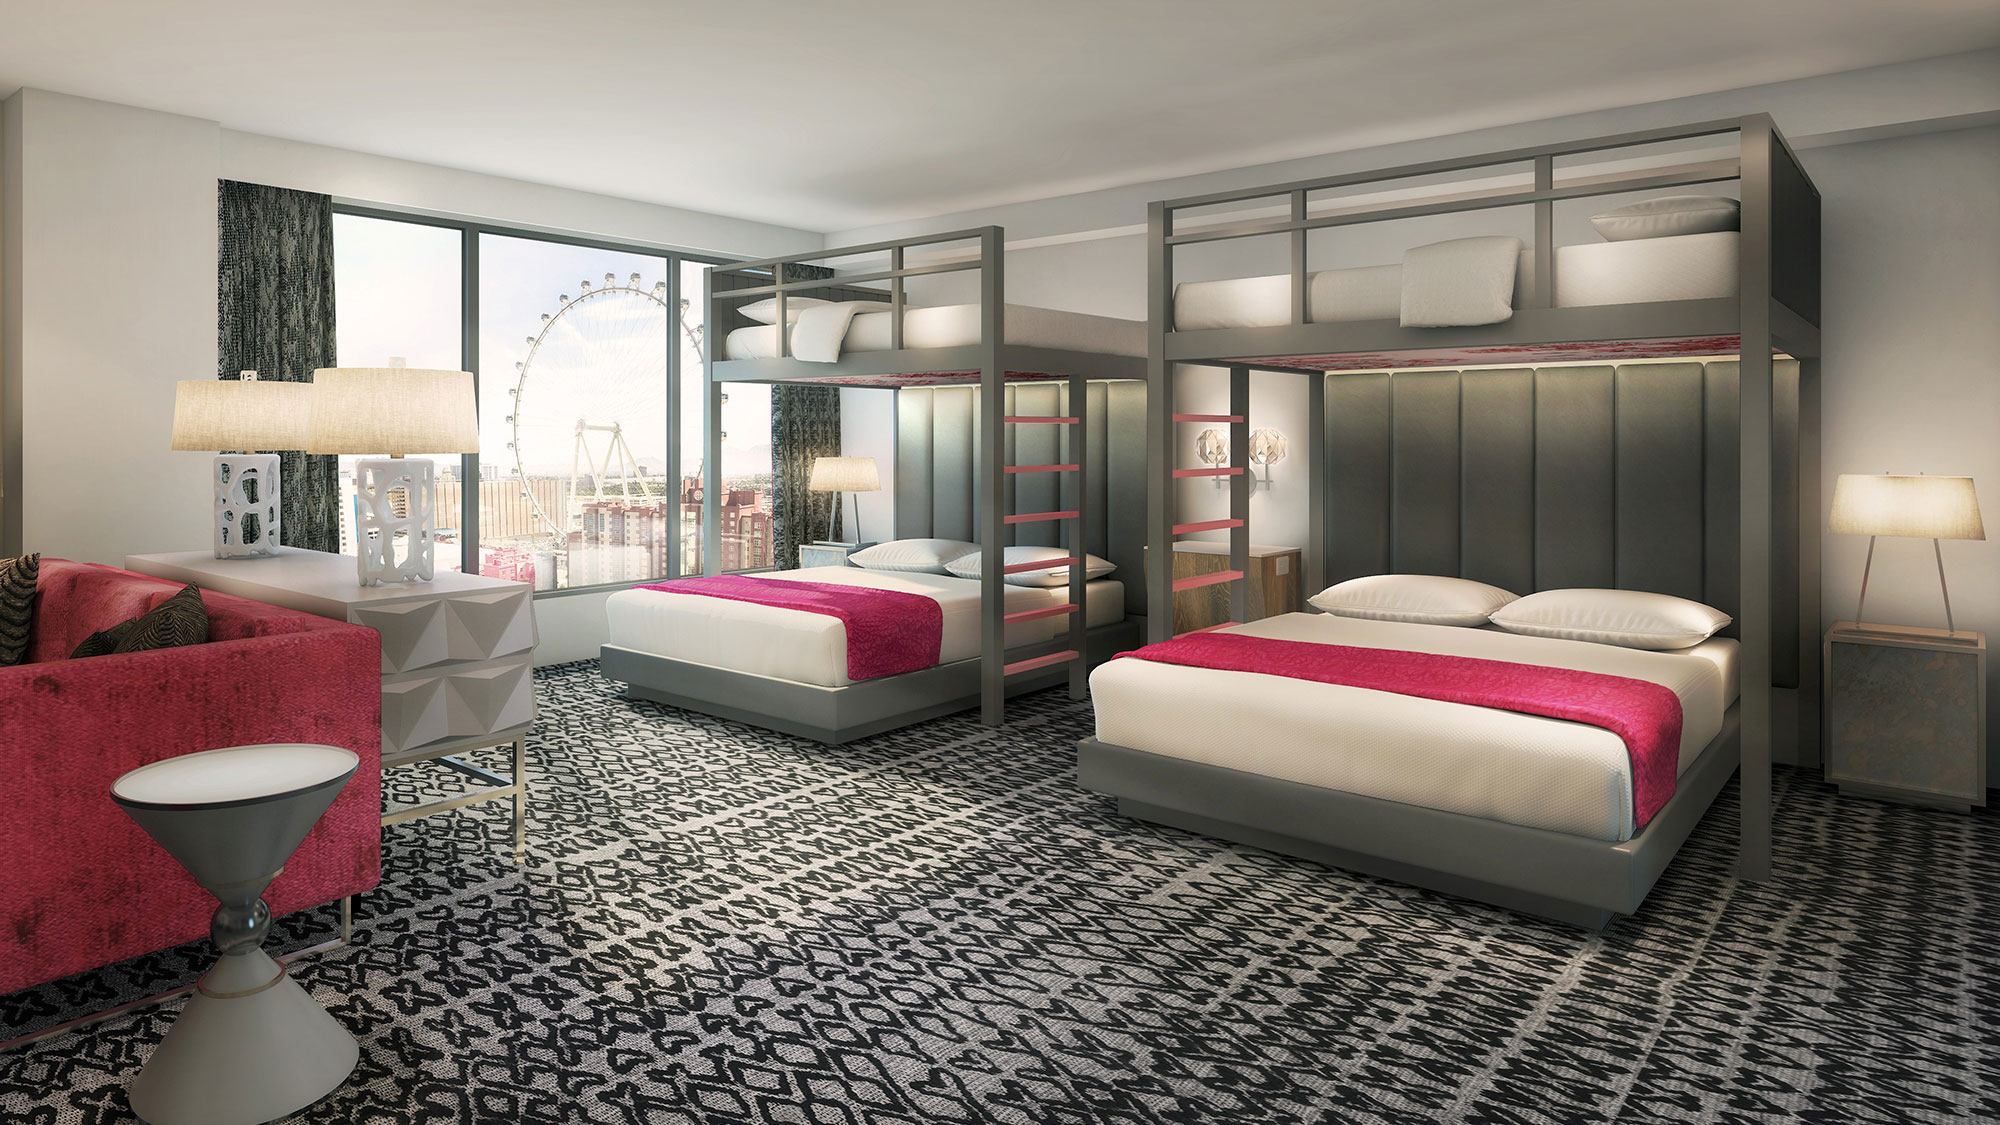 Flamingo Bunk Bed Rooms Can Draw A Crowd Travel Weekly